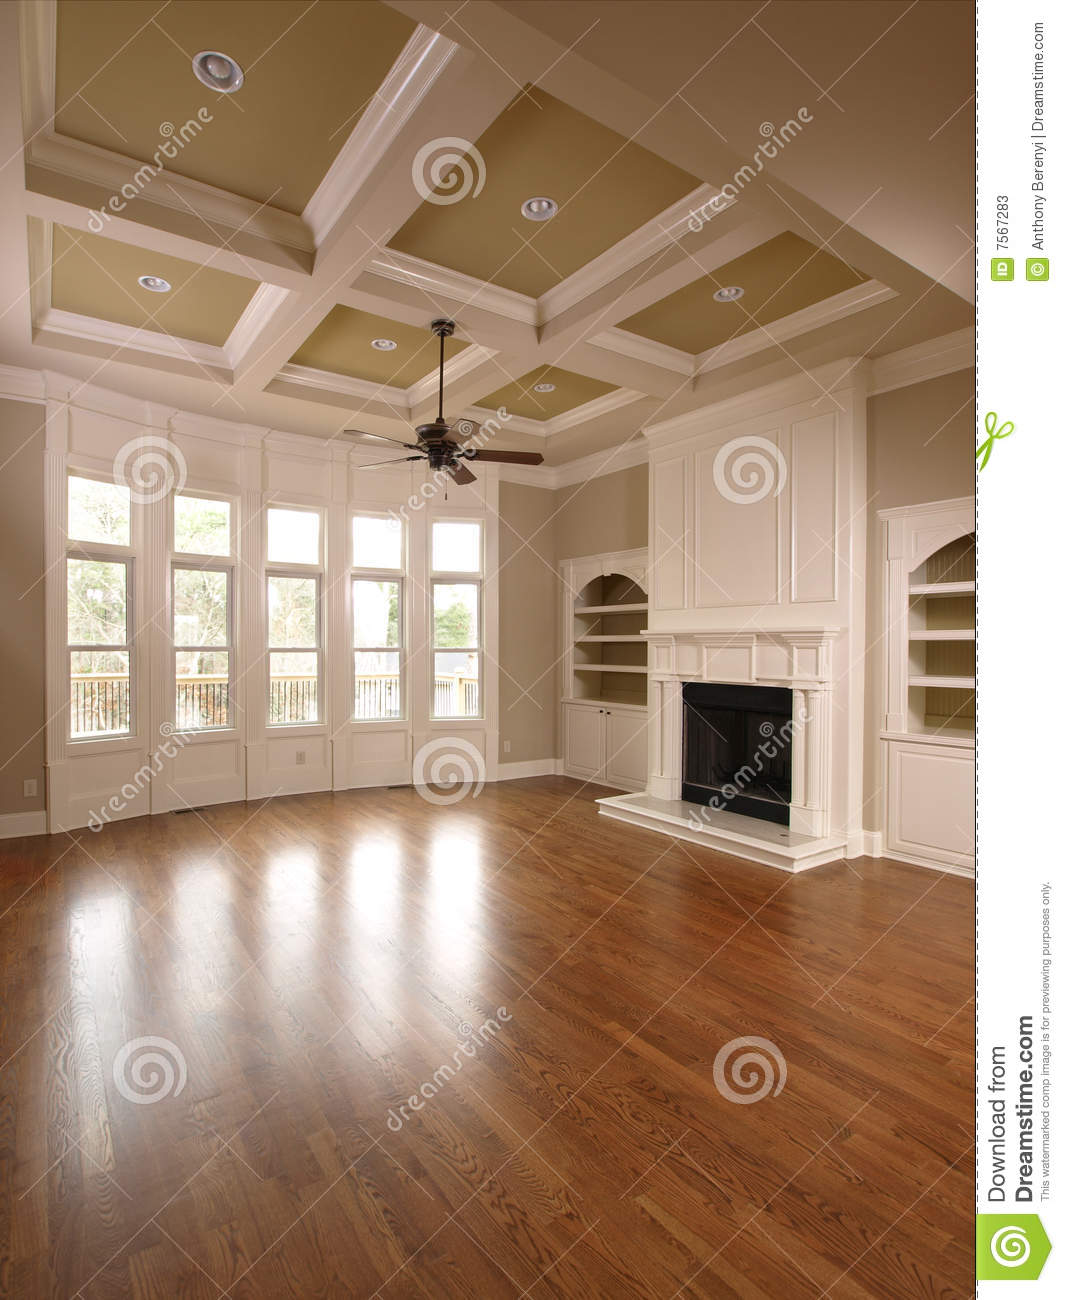 Luxury Home Interior Living Room With Windows Stock Image